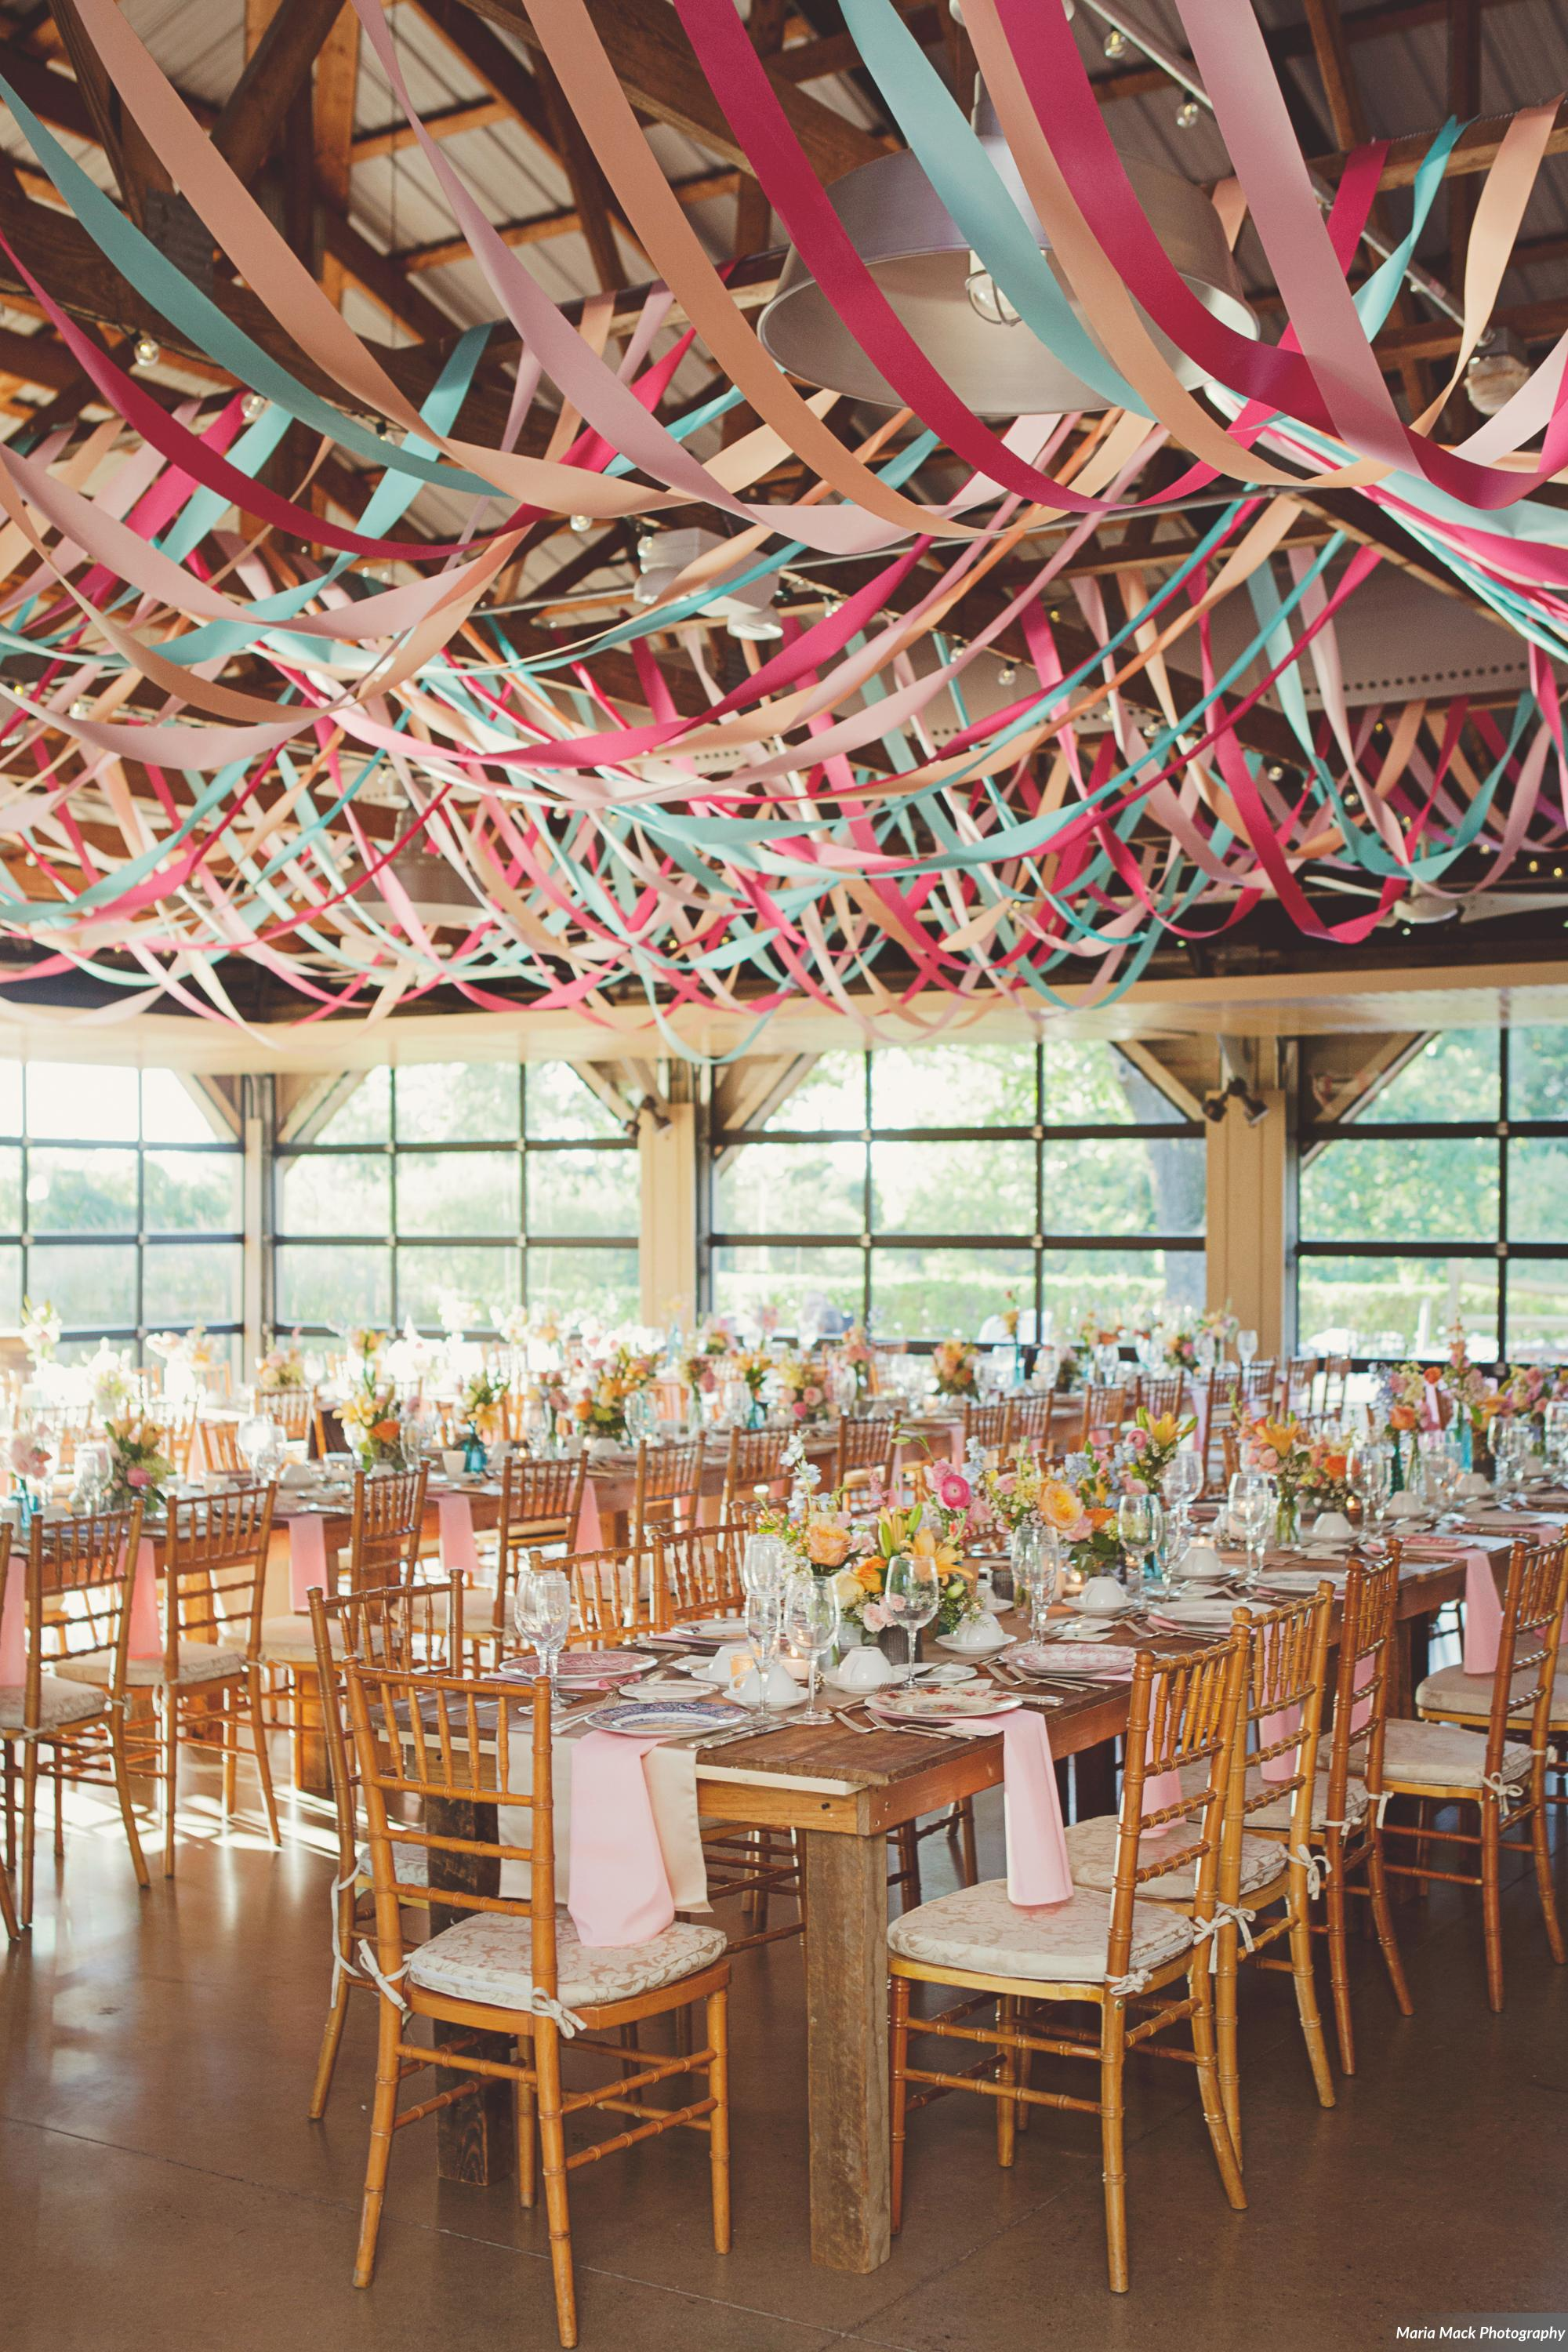 Audubon weddings and special events partyspace audubon weddings and special events image 12 junglespirit Choice Image